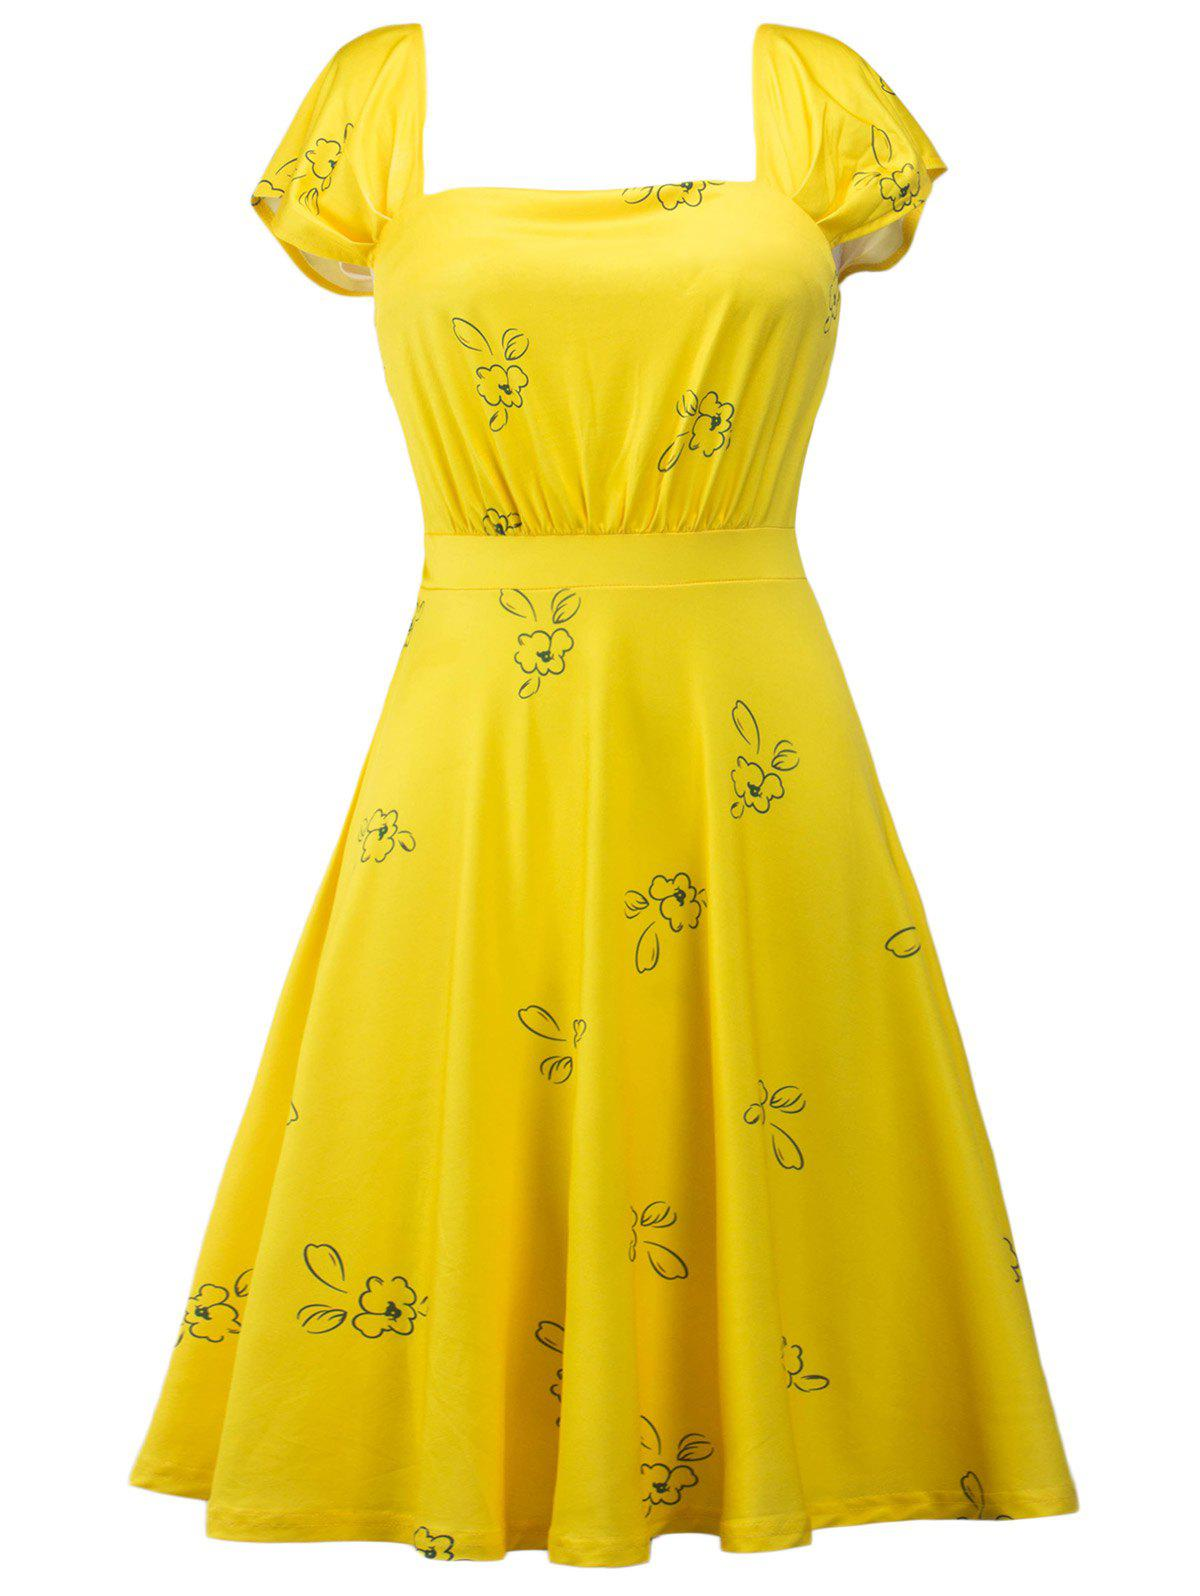 Printed Square Neck High Waist Skater DressWOMEN<br><br>Size: M; Color: YELLOW; Style: Vintage; Material: Polyester; Silhouette: A-Line; Dresses Length: Knee-Length; Neckline: Square Collar; Sleeve Length: Short Sleeves; Pattern Type: Print; With Belt: No; Season: Summer; Weight: 0.2700kg; Package Contents: 1 x Dress;